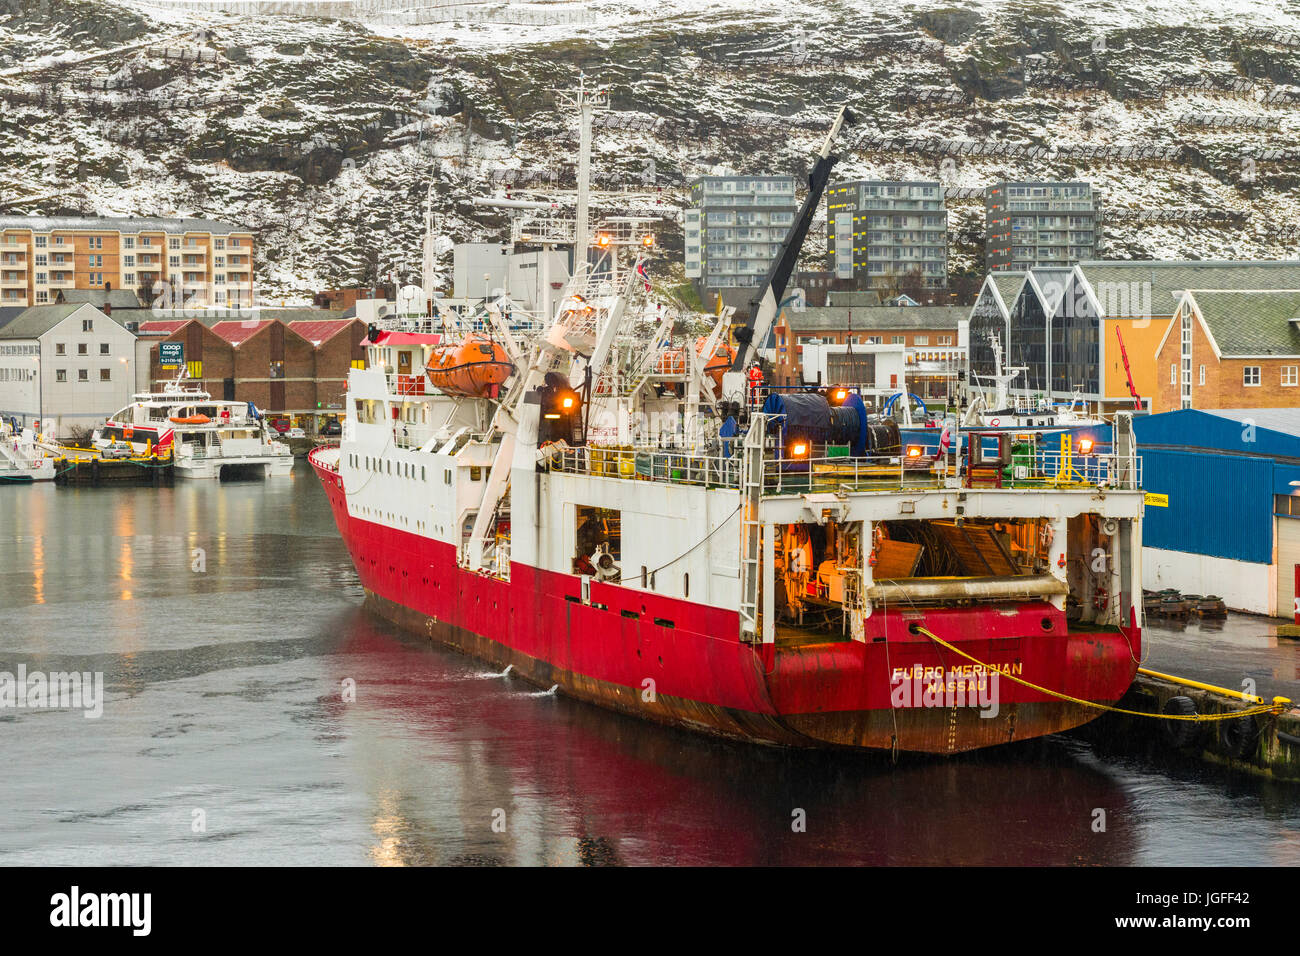 Research survey vessel Fugro Meridian moored at the port of Hammerfest, Finnmark County, northern Norway - Stock Image